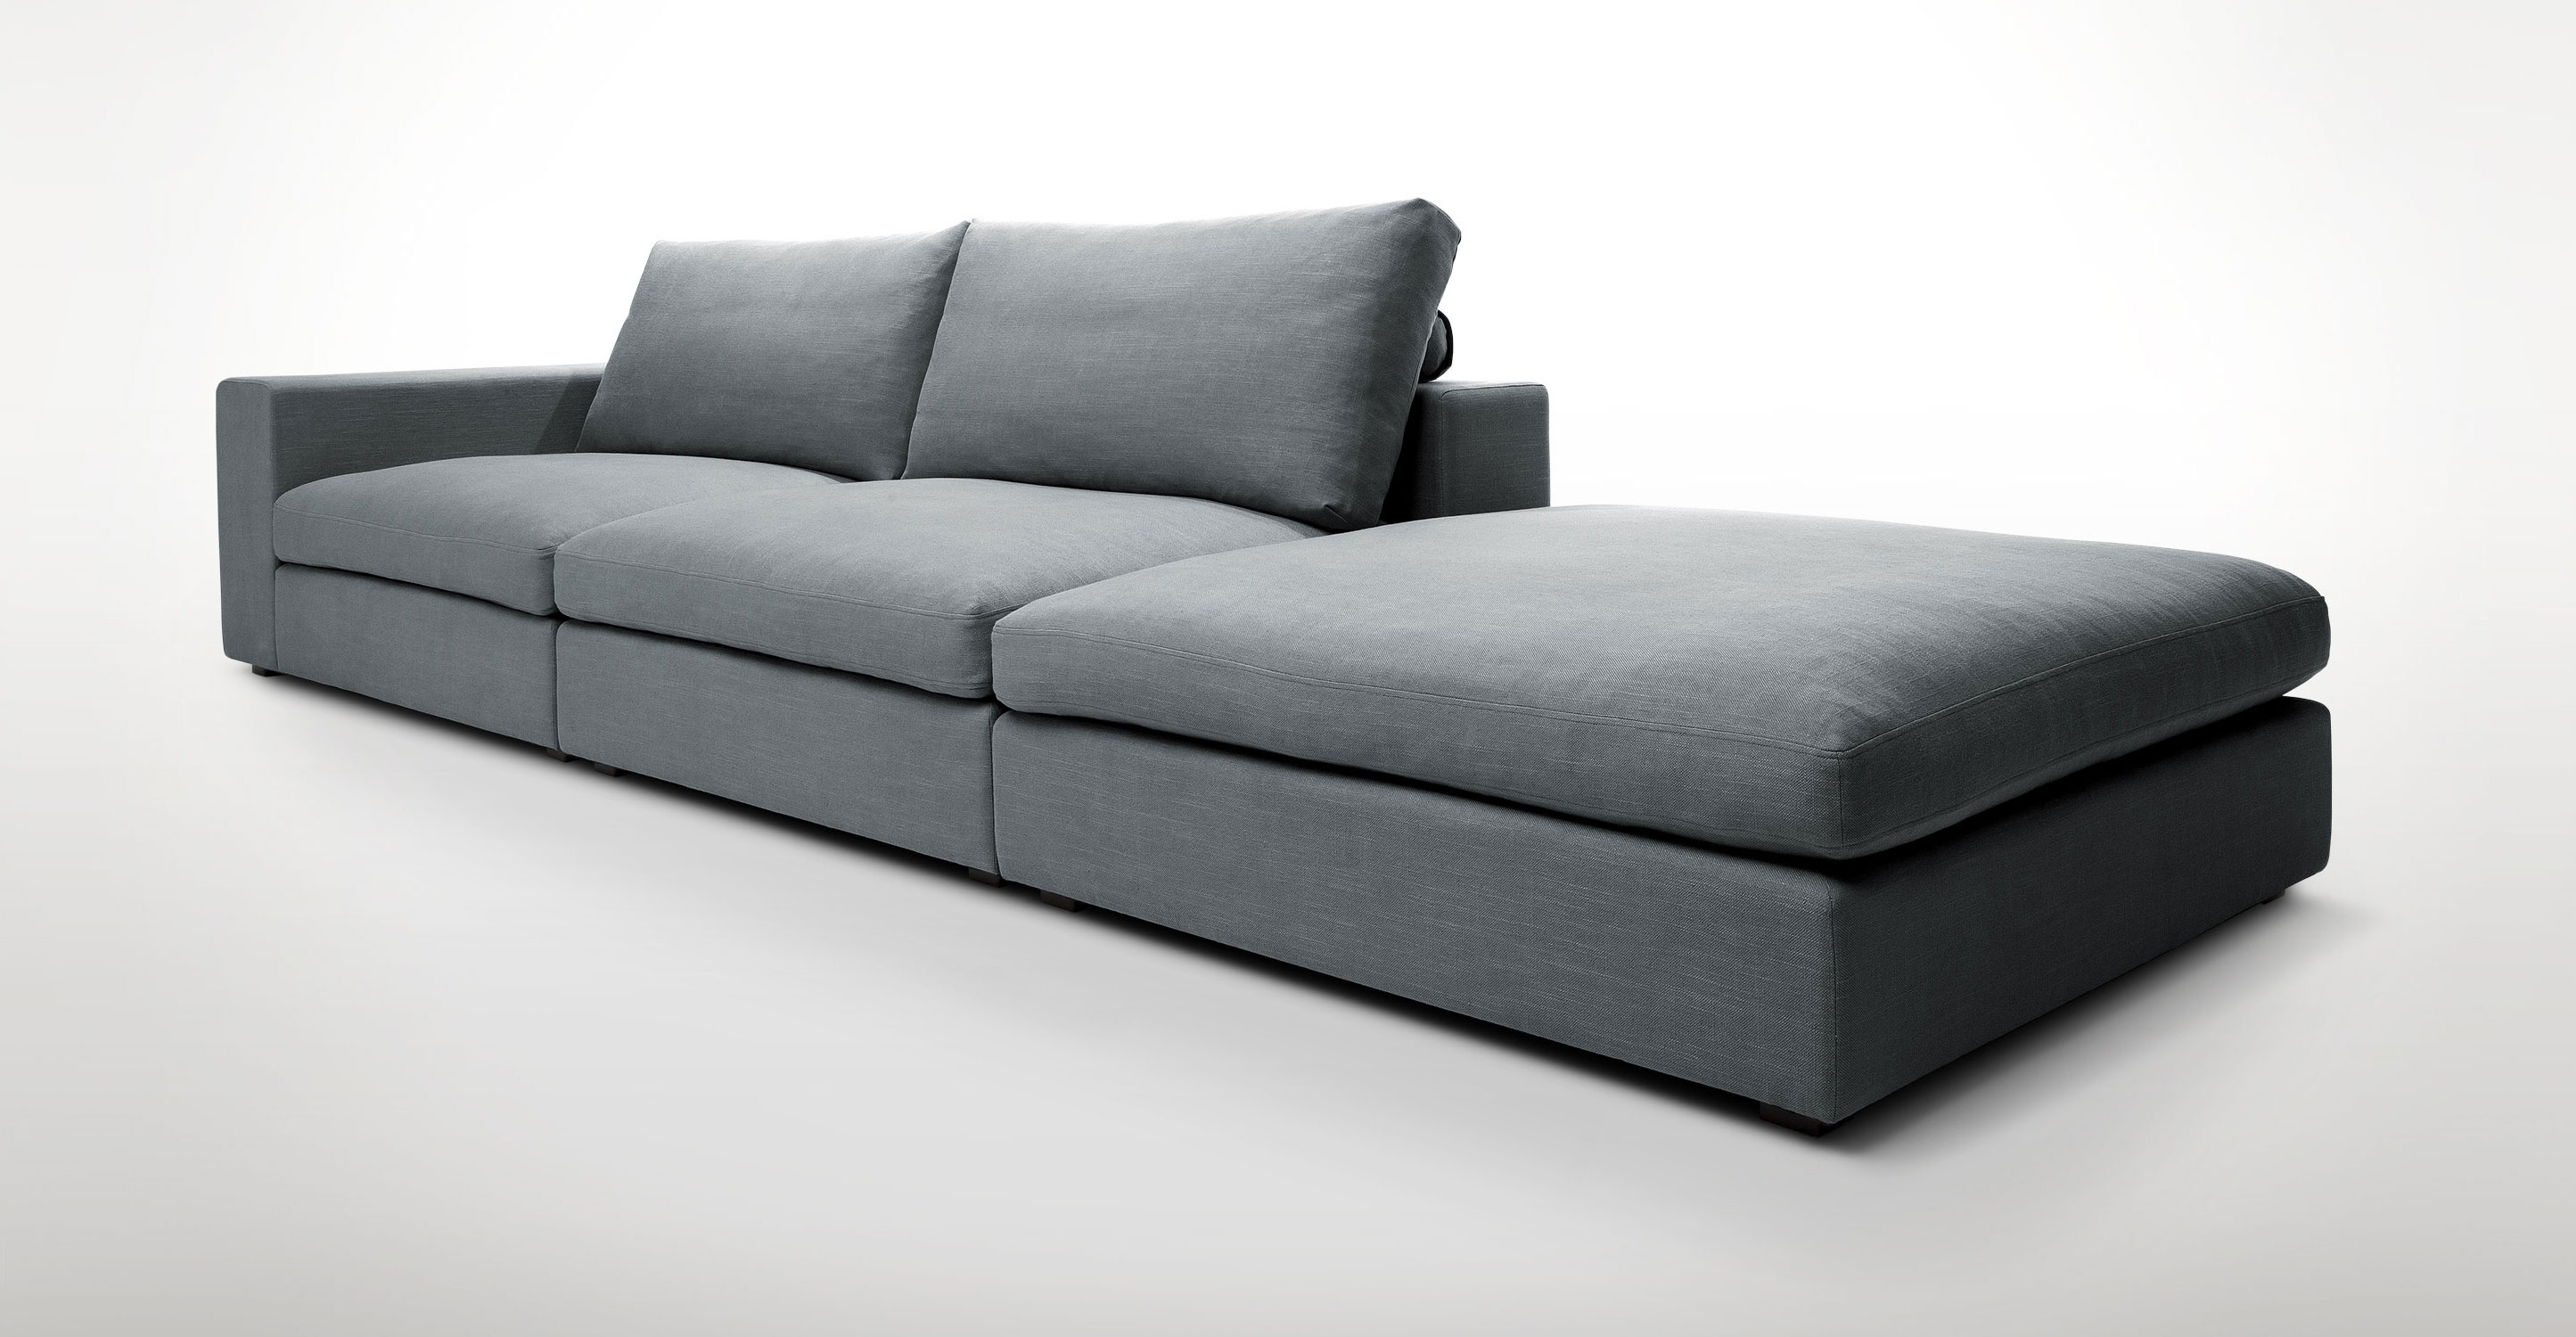 Most Current Sectional Sofas In Hyderabad Pertaining To Furniture : 2 Up Modular Sofa Modular Sofa Plans Sofa Set (View 8 of 20)